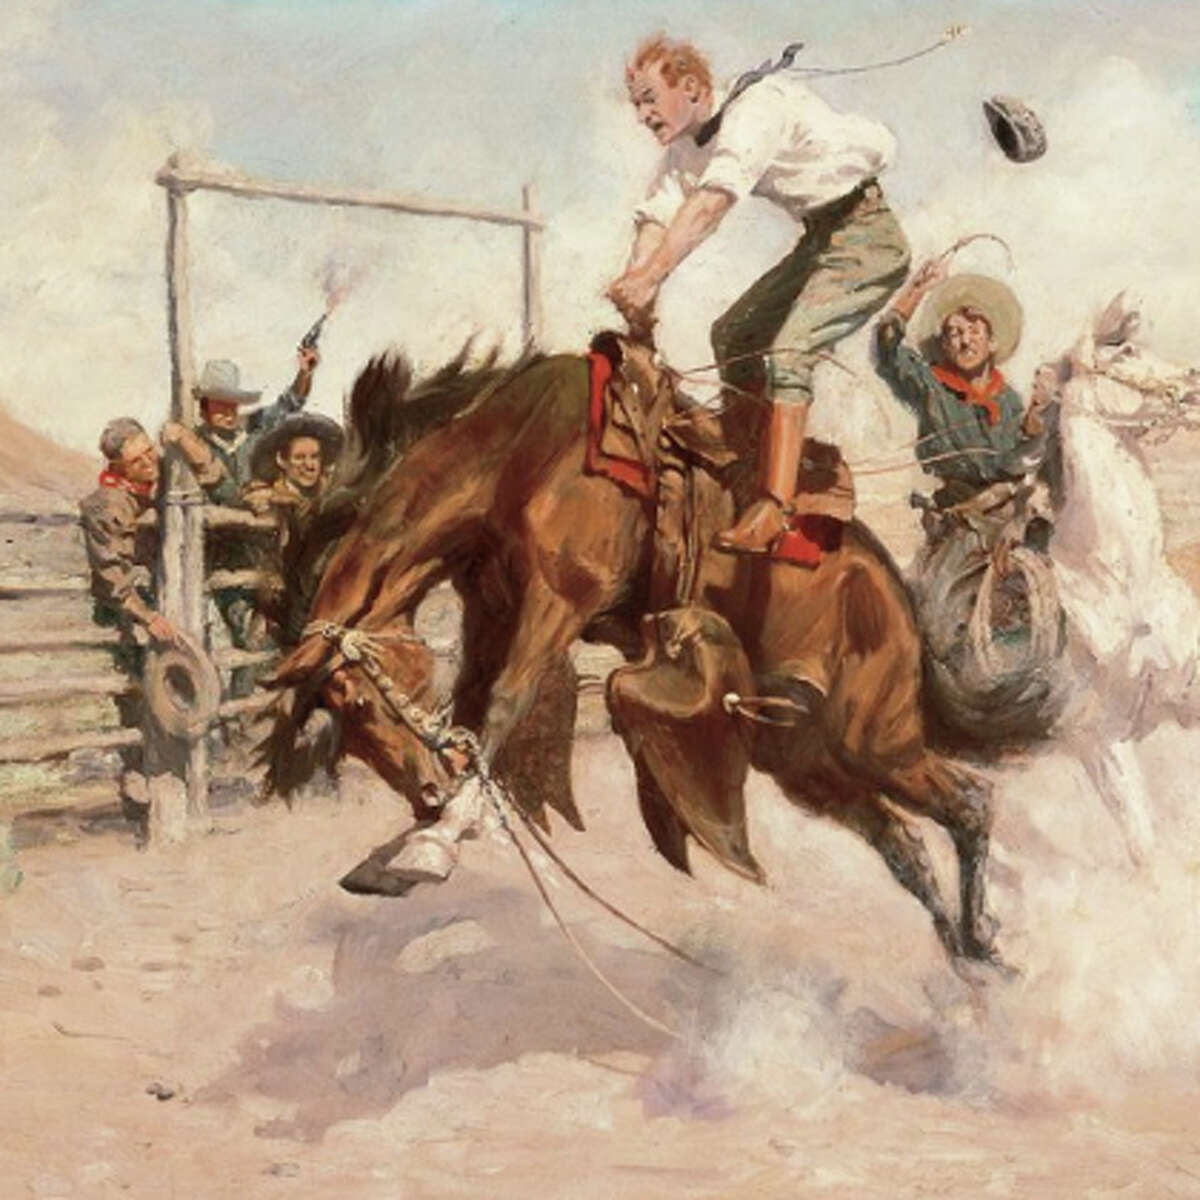 """Bill Schenck's """"Cowgirl"""" and other Western American in the Haub Family Collection will have a new showcase at the expanded Tacoma Art Museum, opening Nov. 15."""